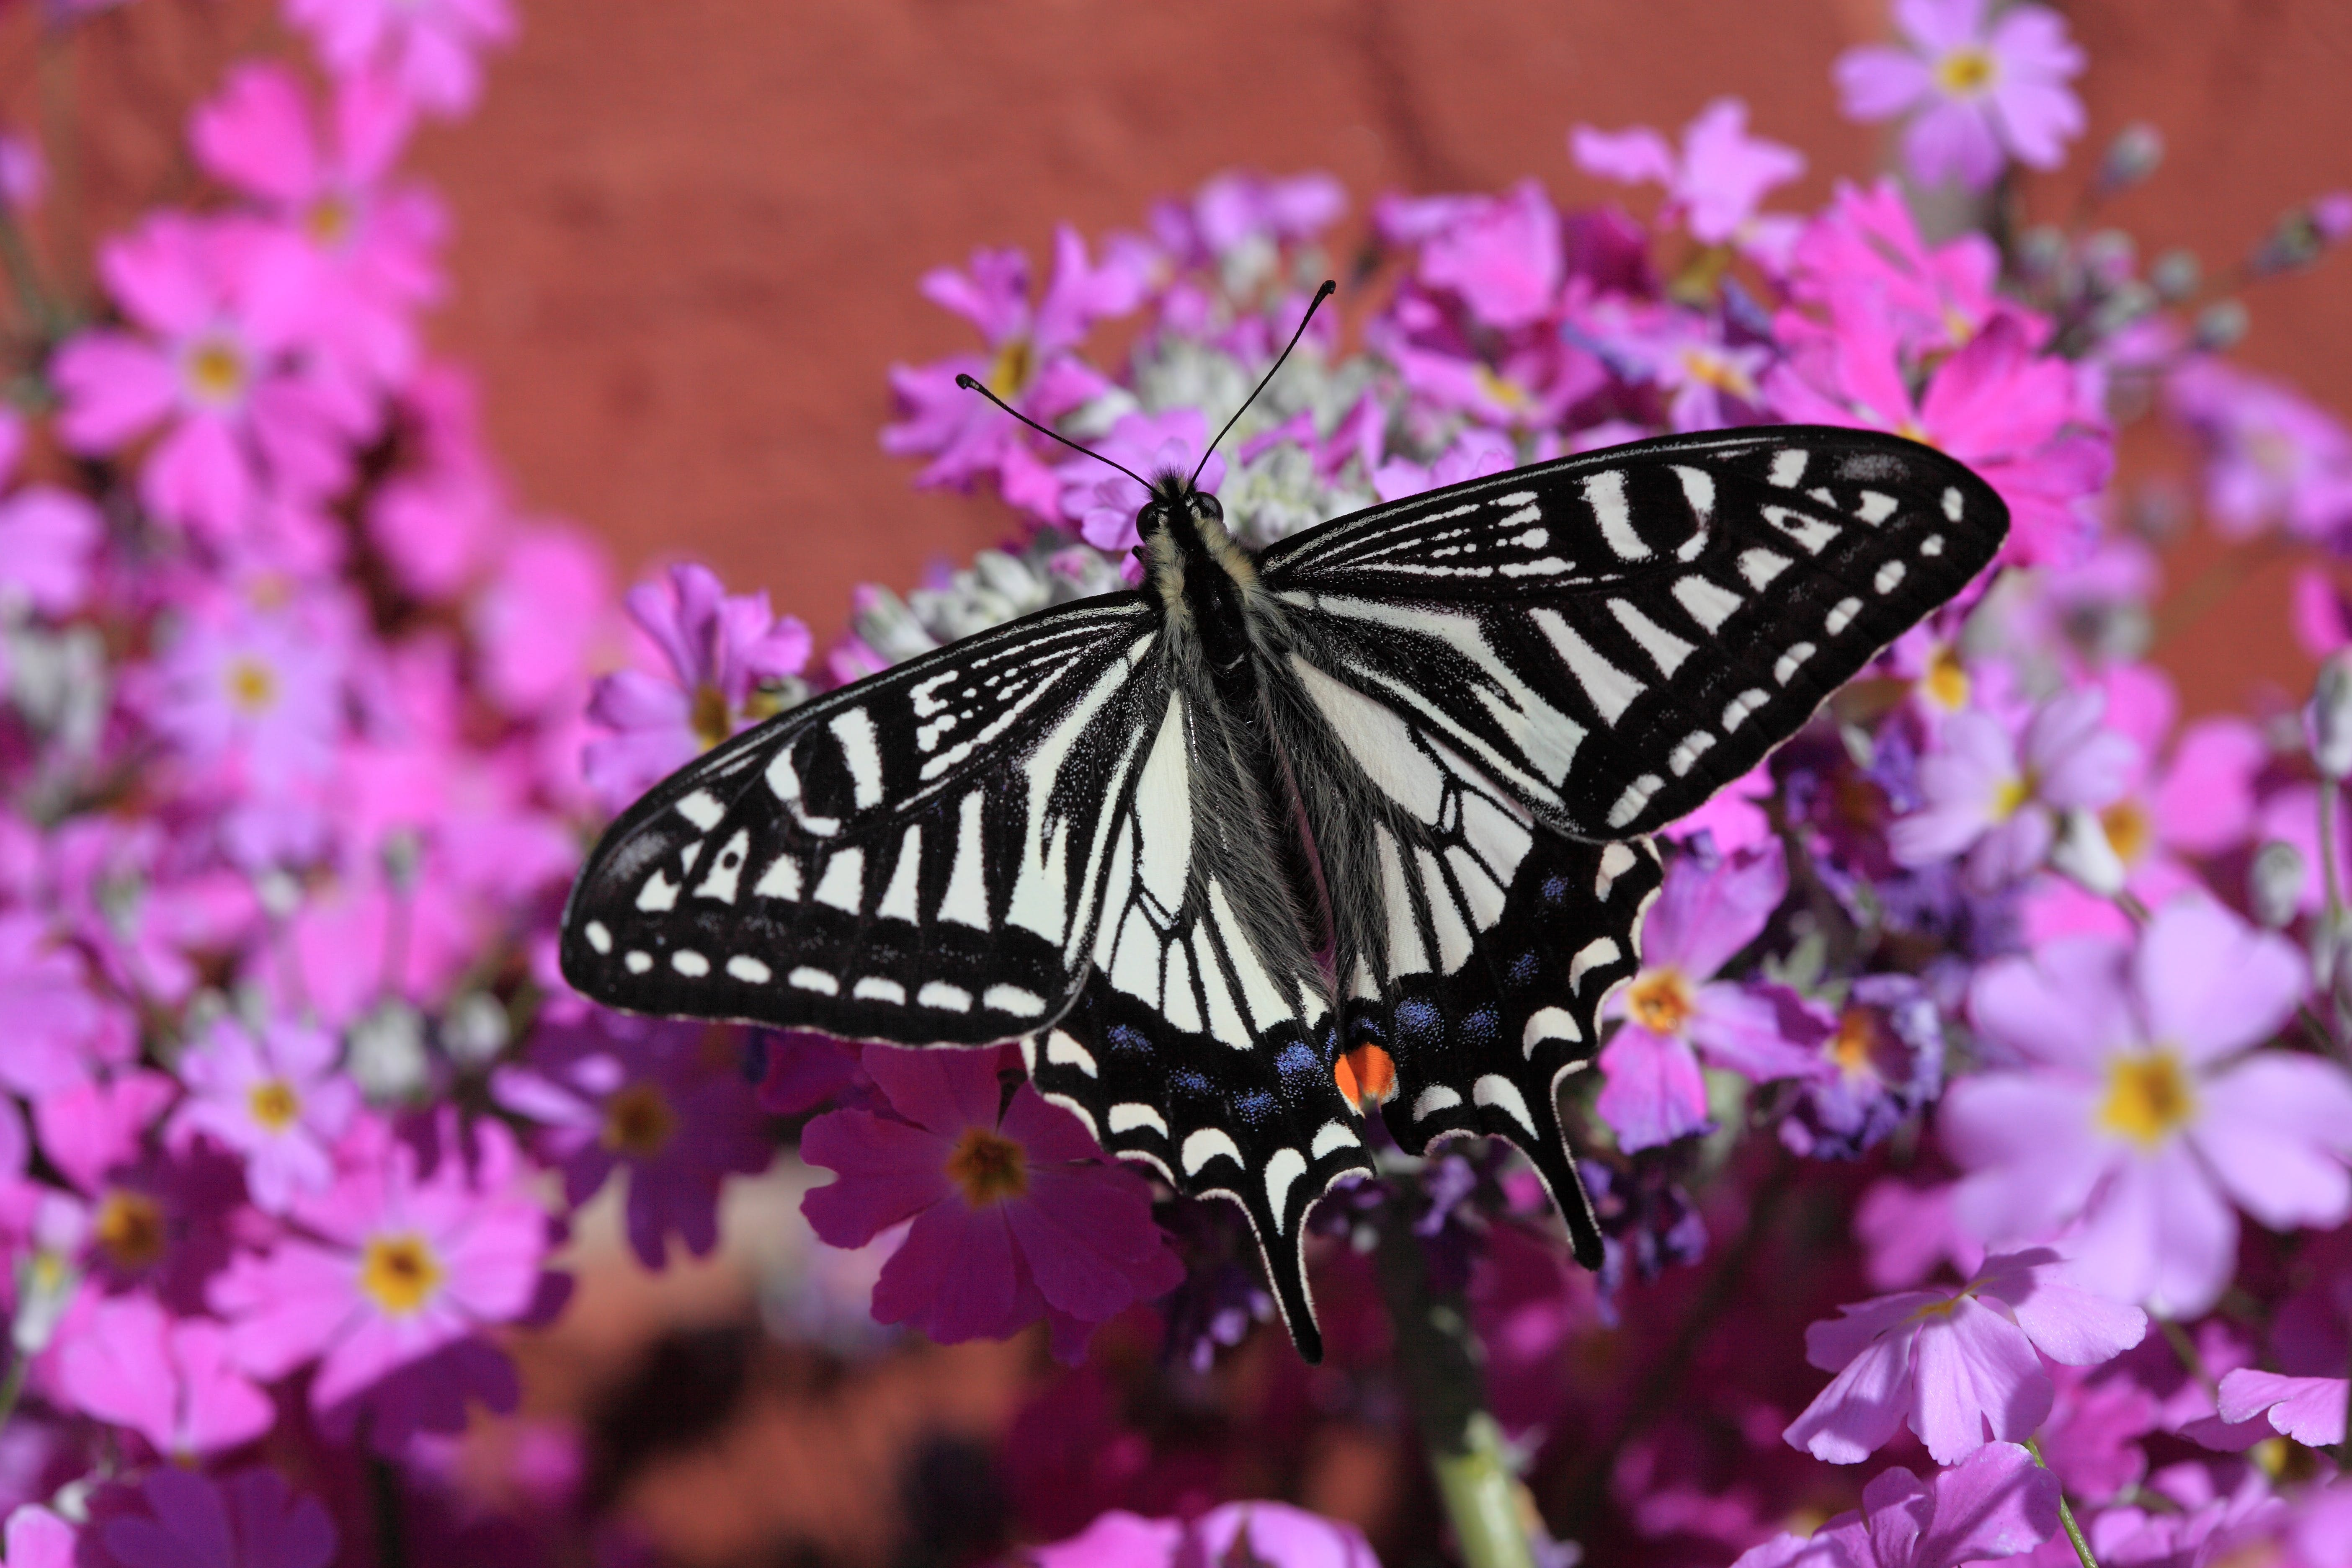 White and Black Butterfly on Pink White and Yellow Flowers